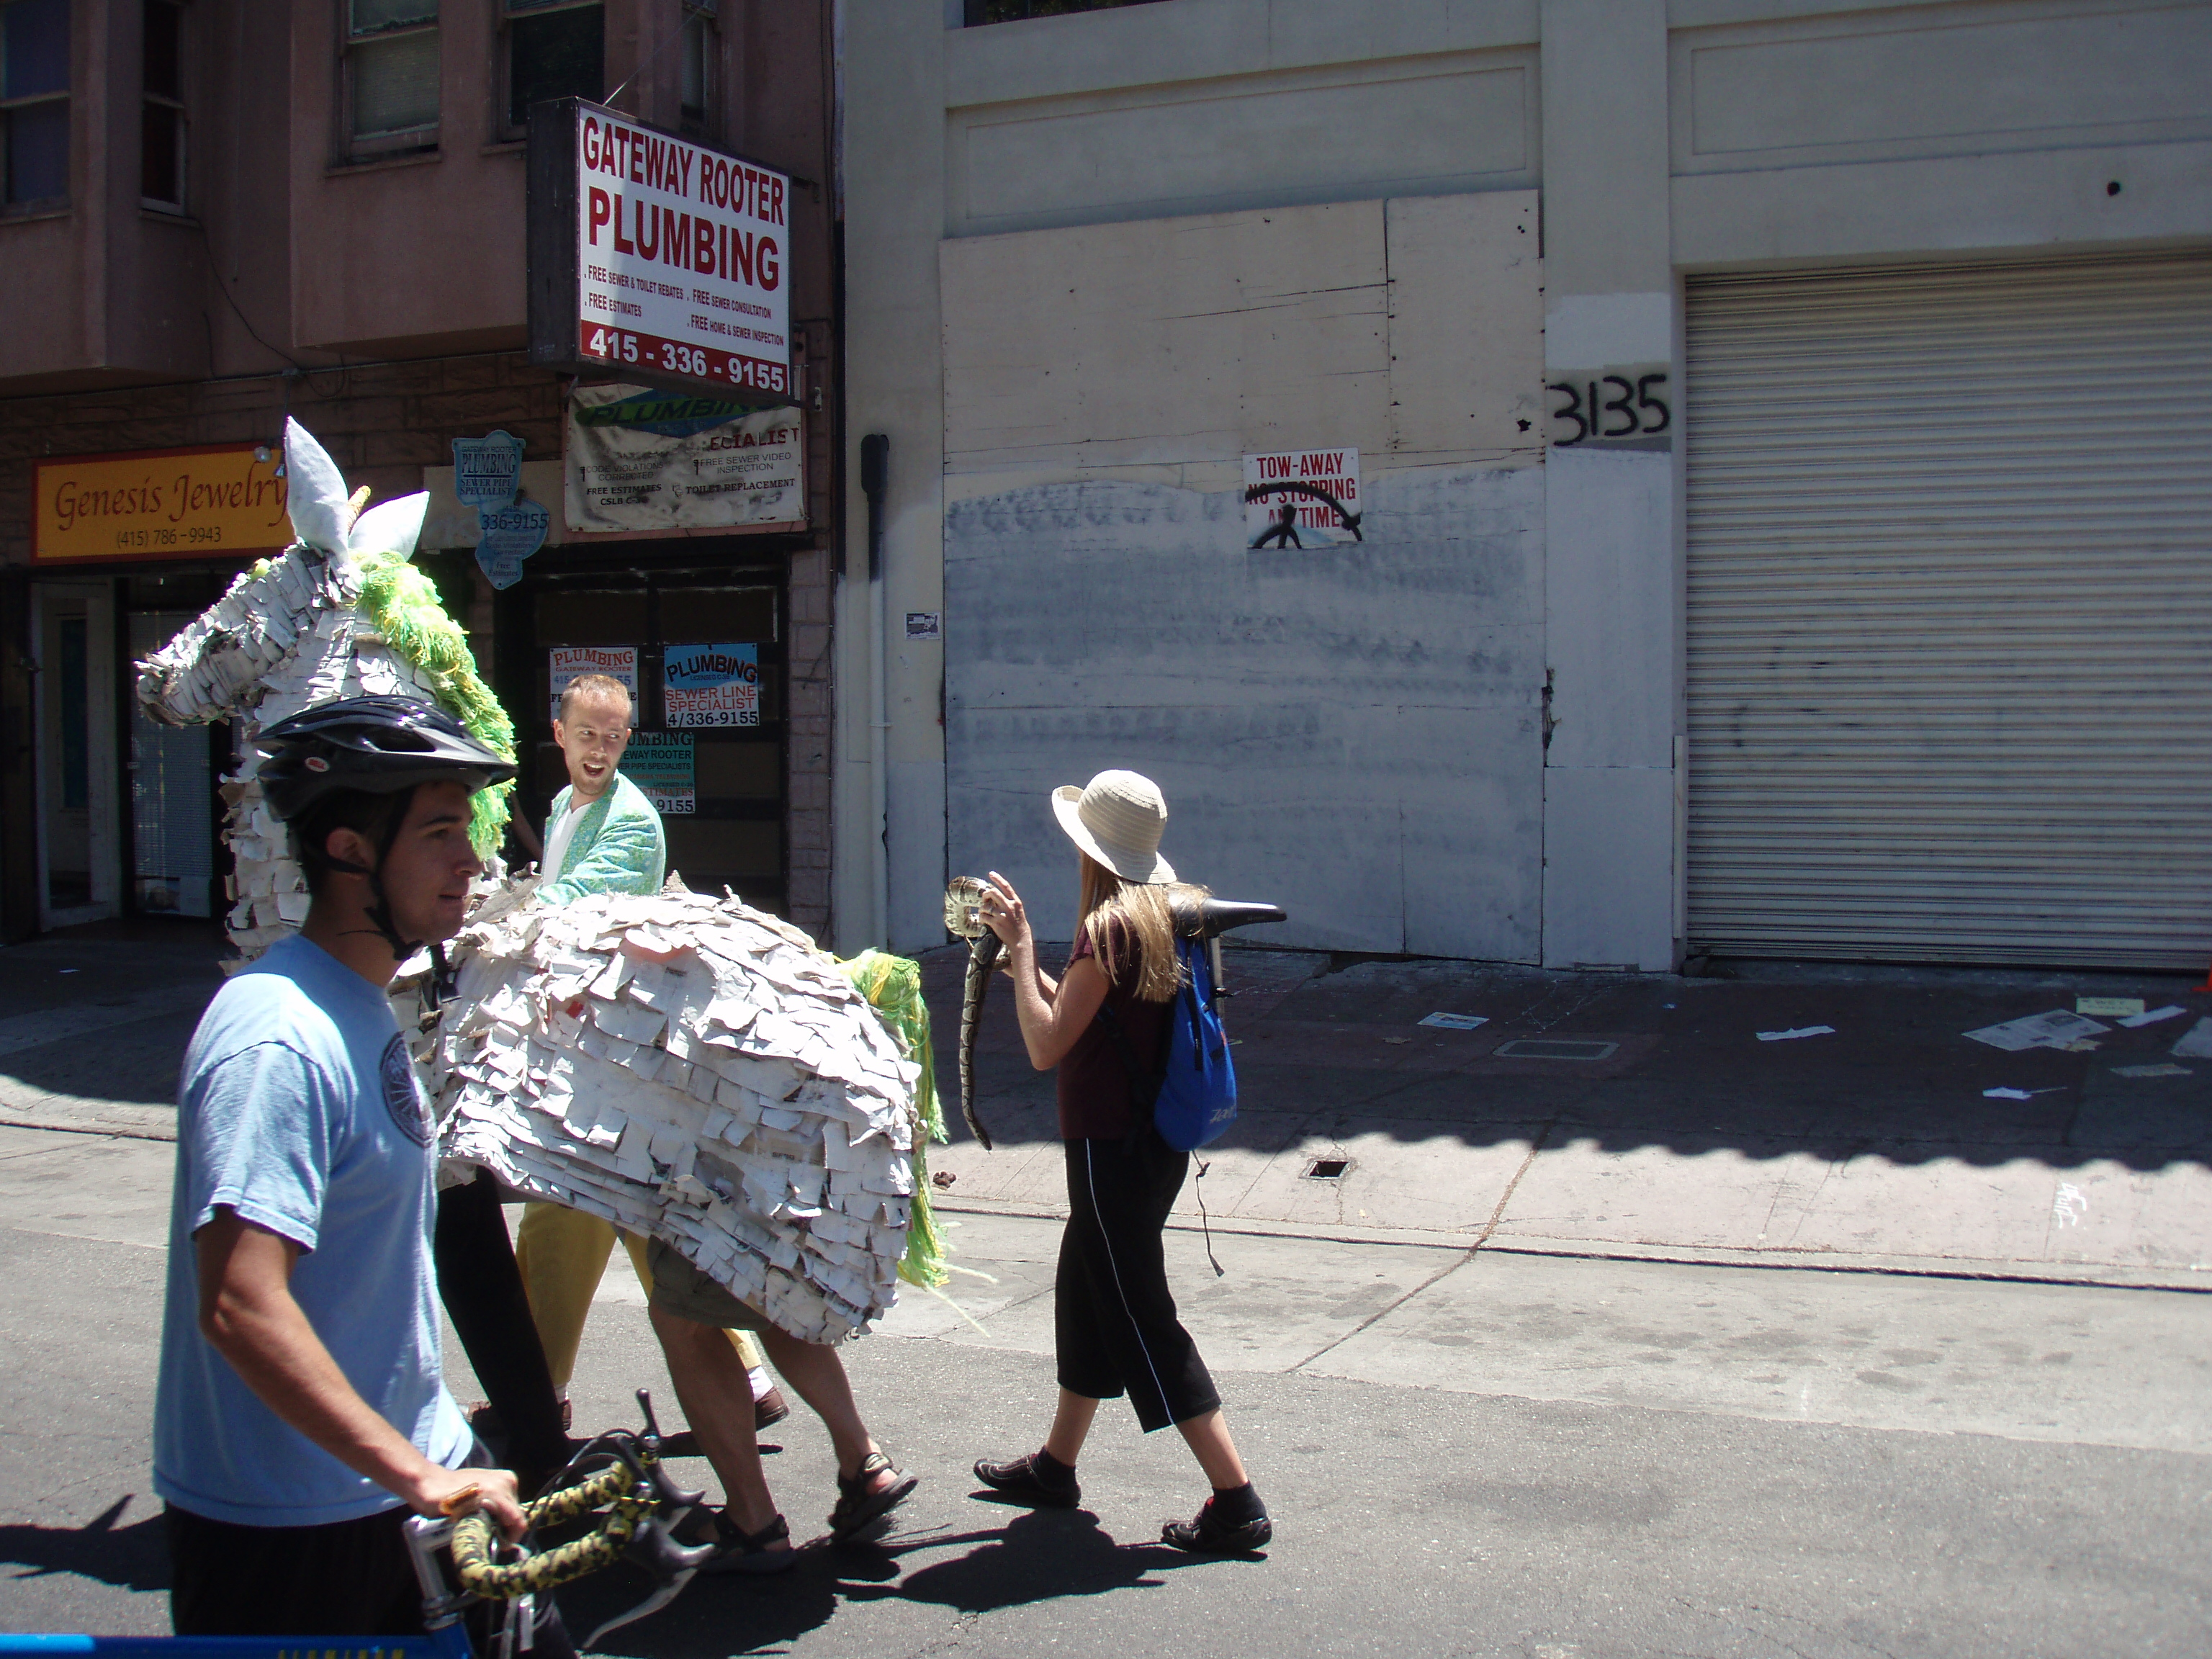 After stopping off at Pop's for a refreshment, I stumbled across a unicorn walking down the street with a crazy lady chasing them with a snake.  I immediately became concerned that the bartender drugged me and I was tripping balls.  After some passersby checked my pupils to confirm my sobriety, I watched in awe as the woman tried to mount the snake on the back of the unicorn, much to the apparent protest of the humans inside the unicorn.